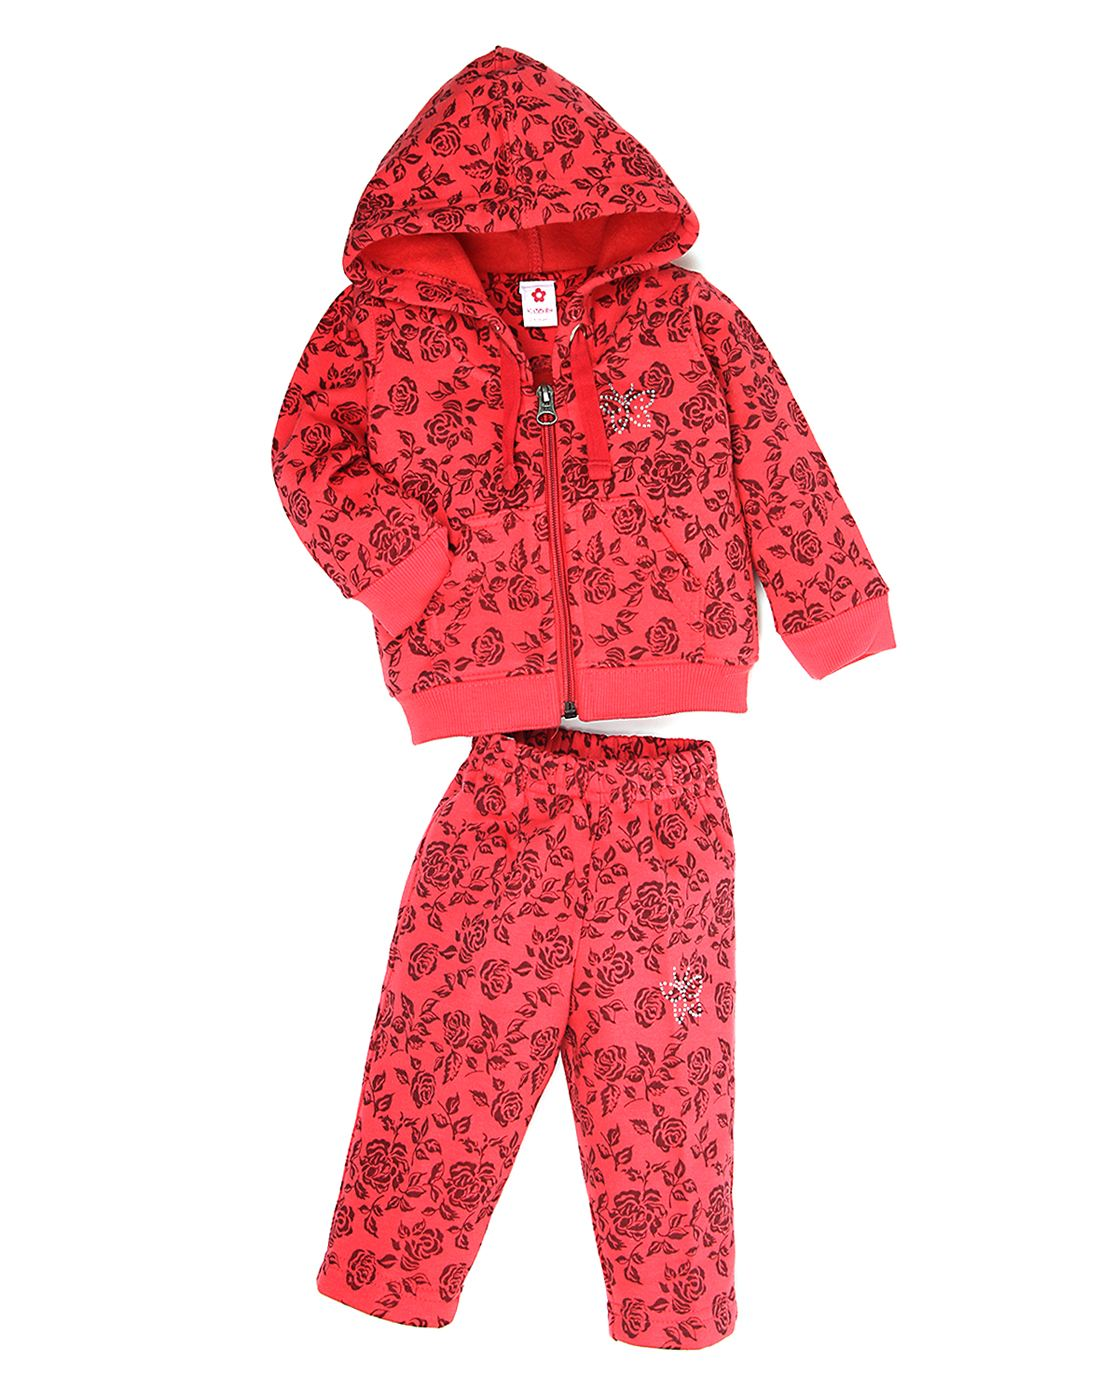 K.C.O 89 Girls Casual Printed Full Sleeves Track Suit